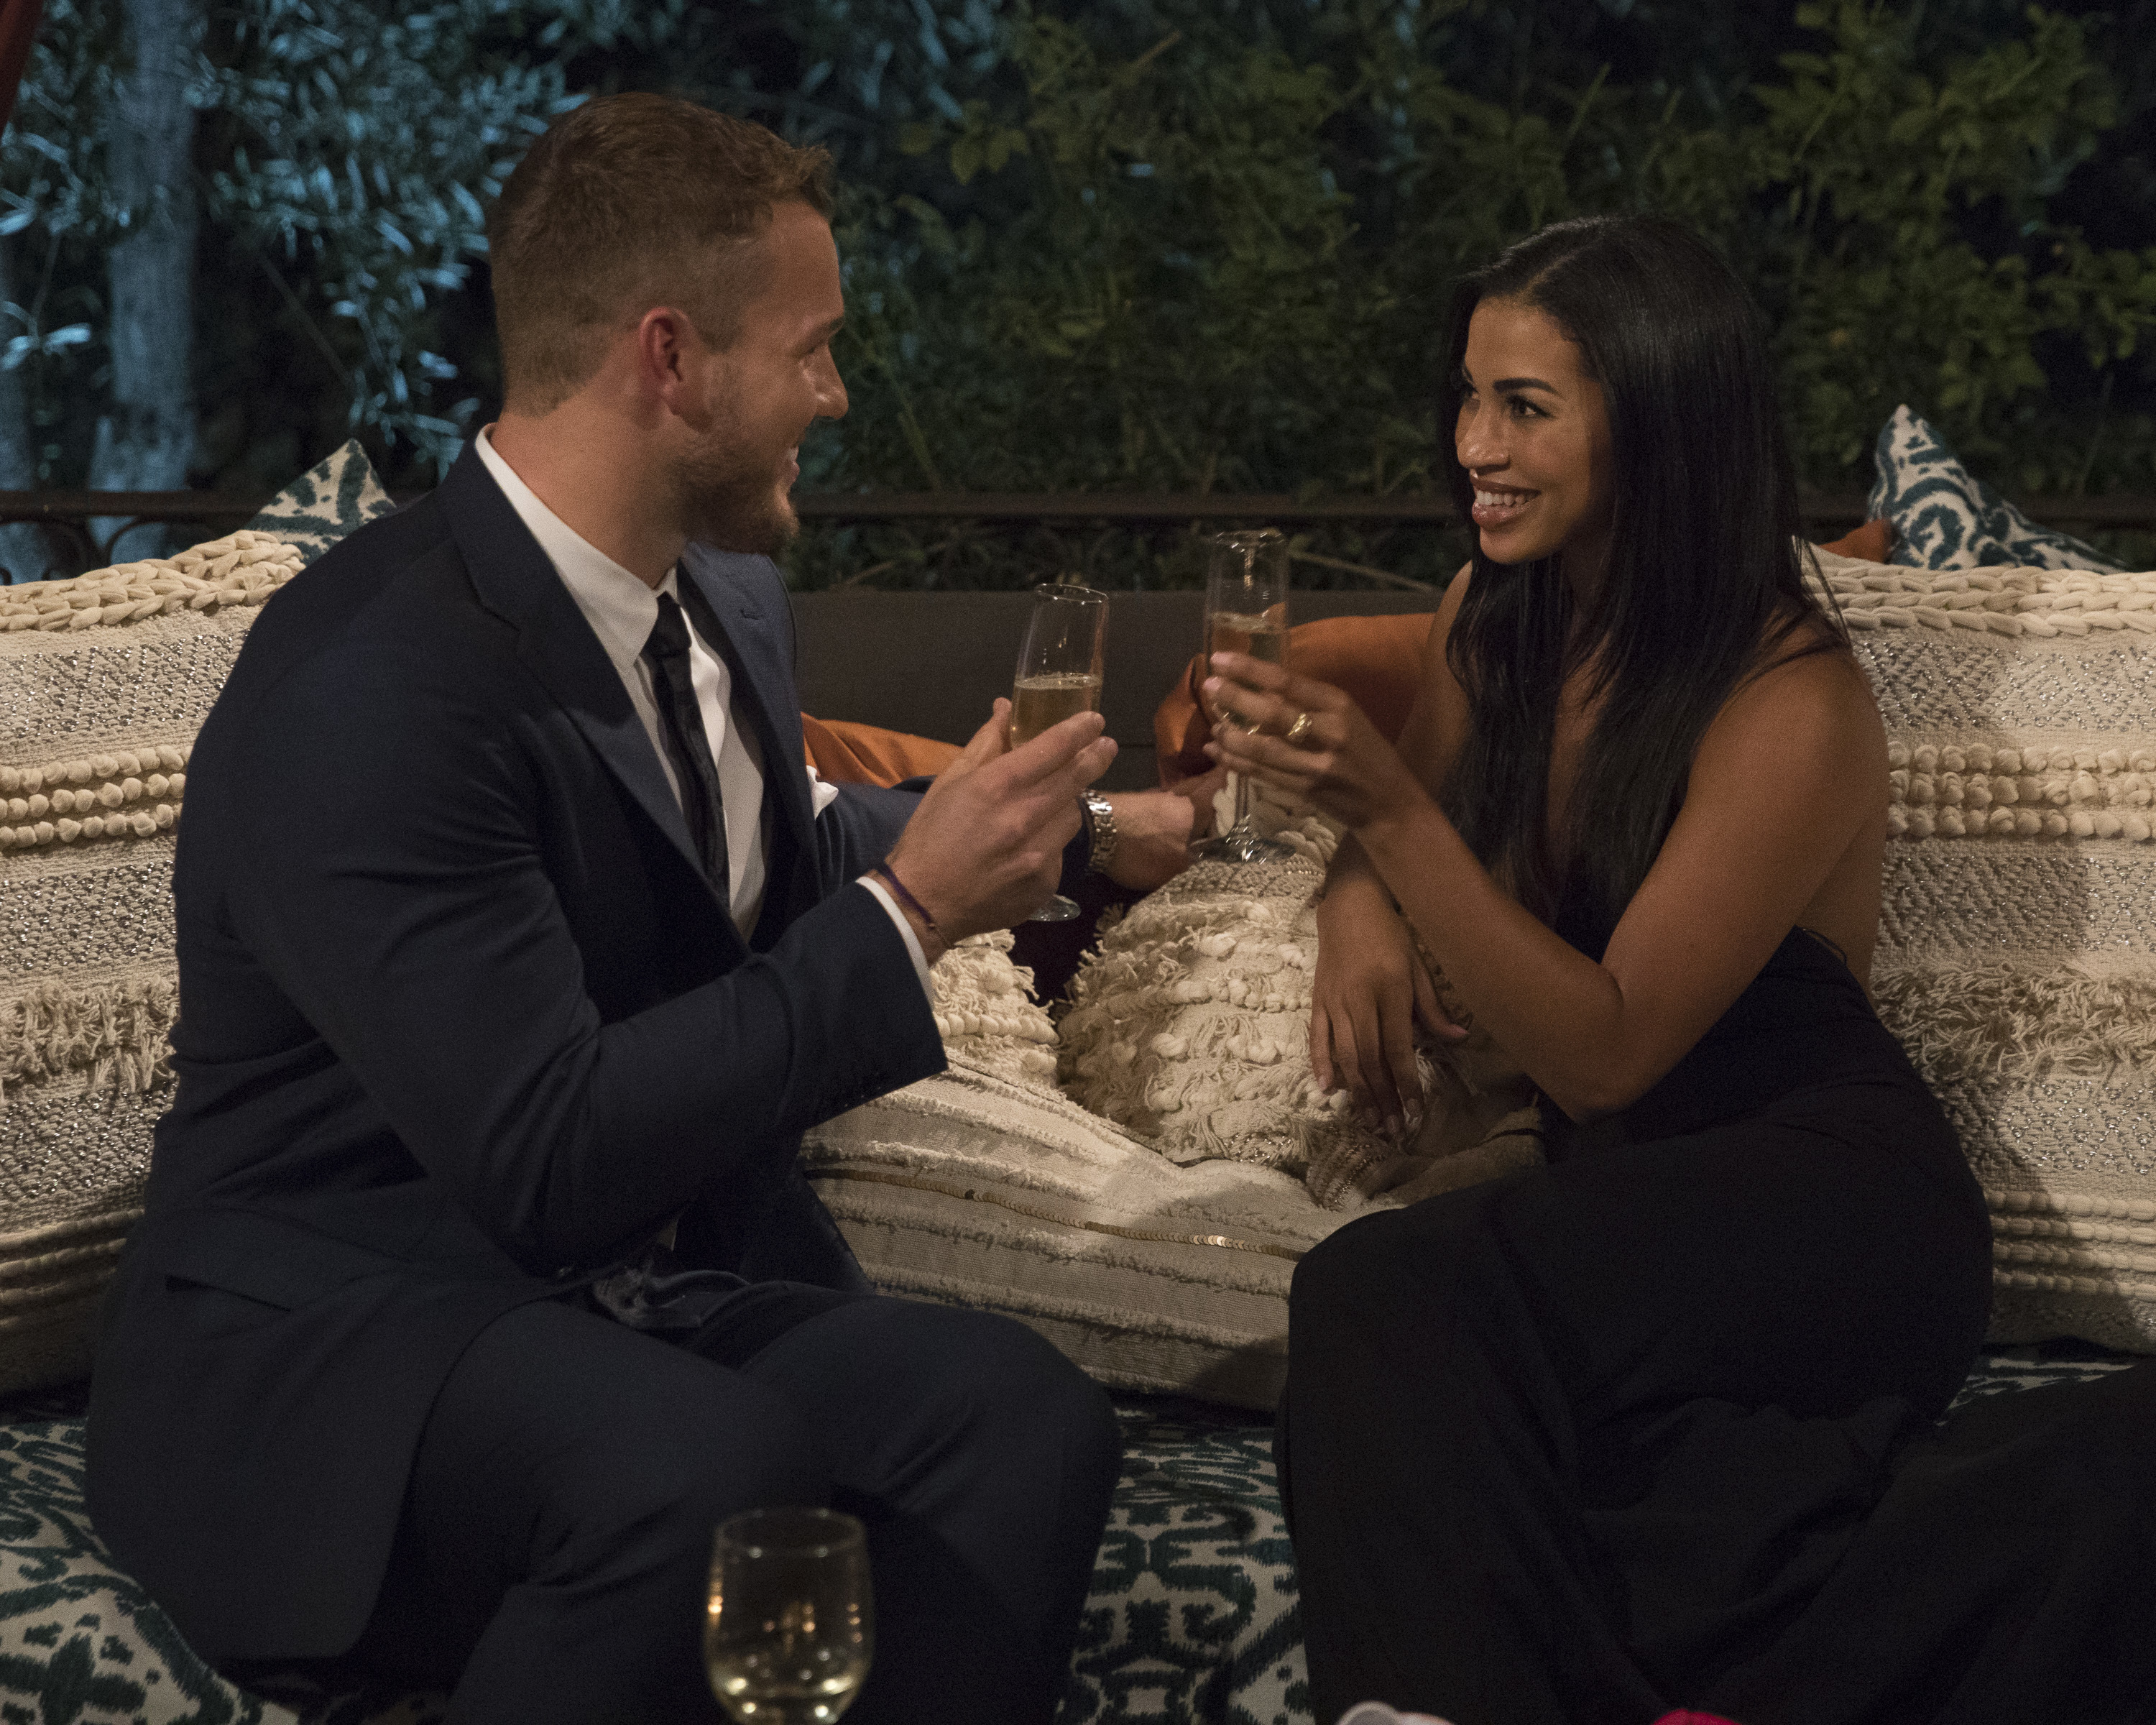 Bachelor 23 - Katie Morton - Discussion - *Sleuthing Spoilers*  - Page 2 150365_0466